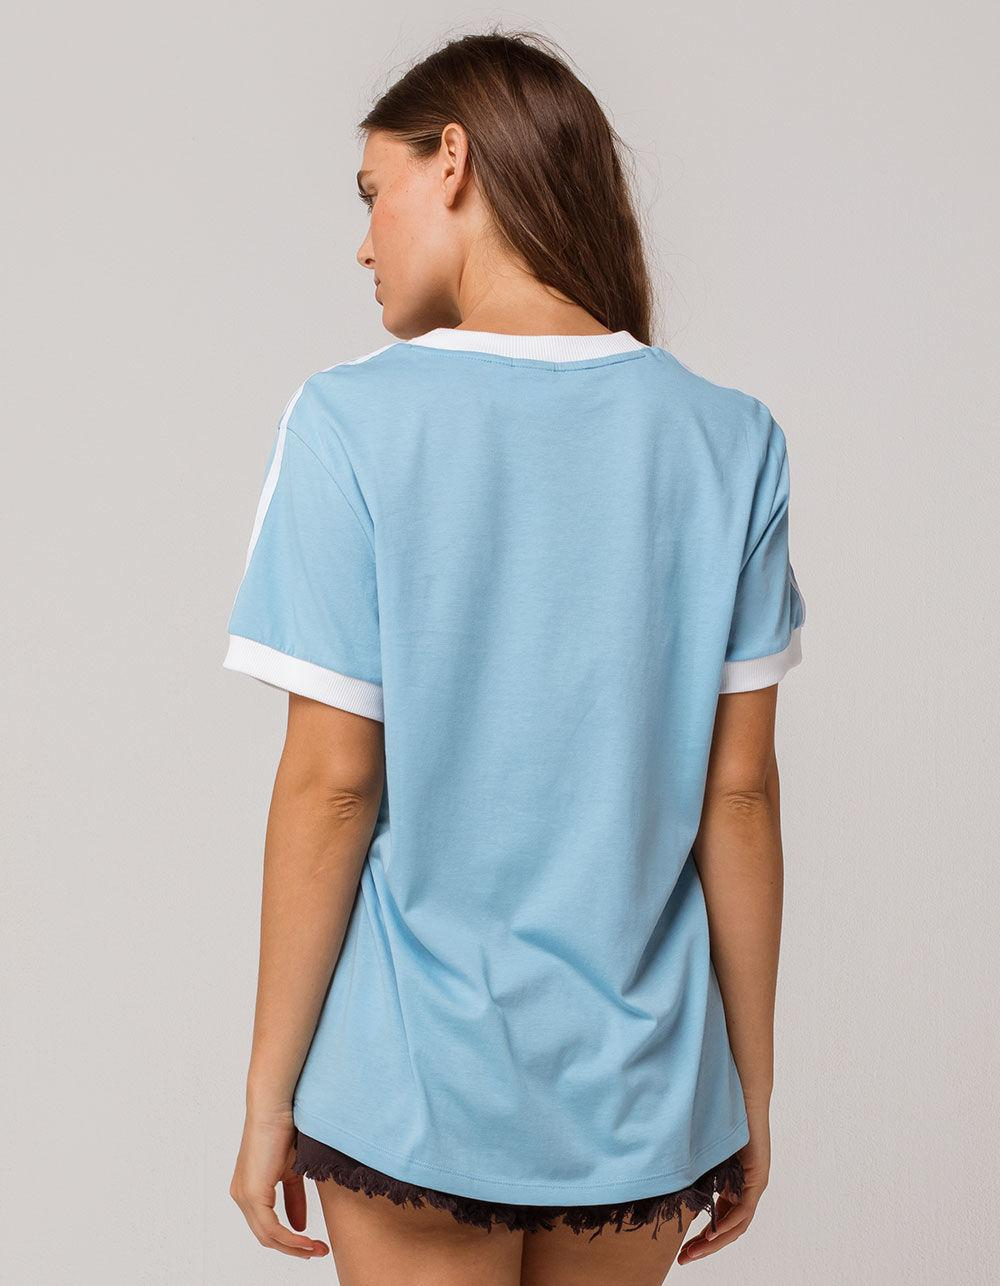 Originals Three Stripes Baby Blue Womens Ringer Tee